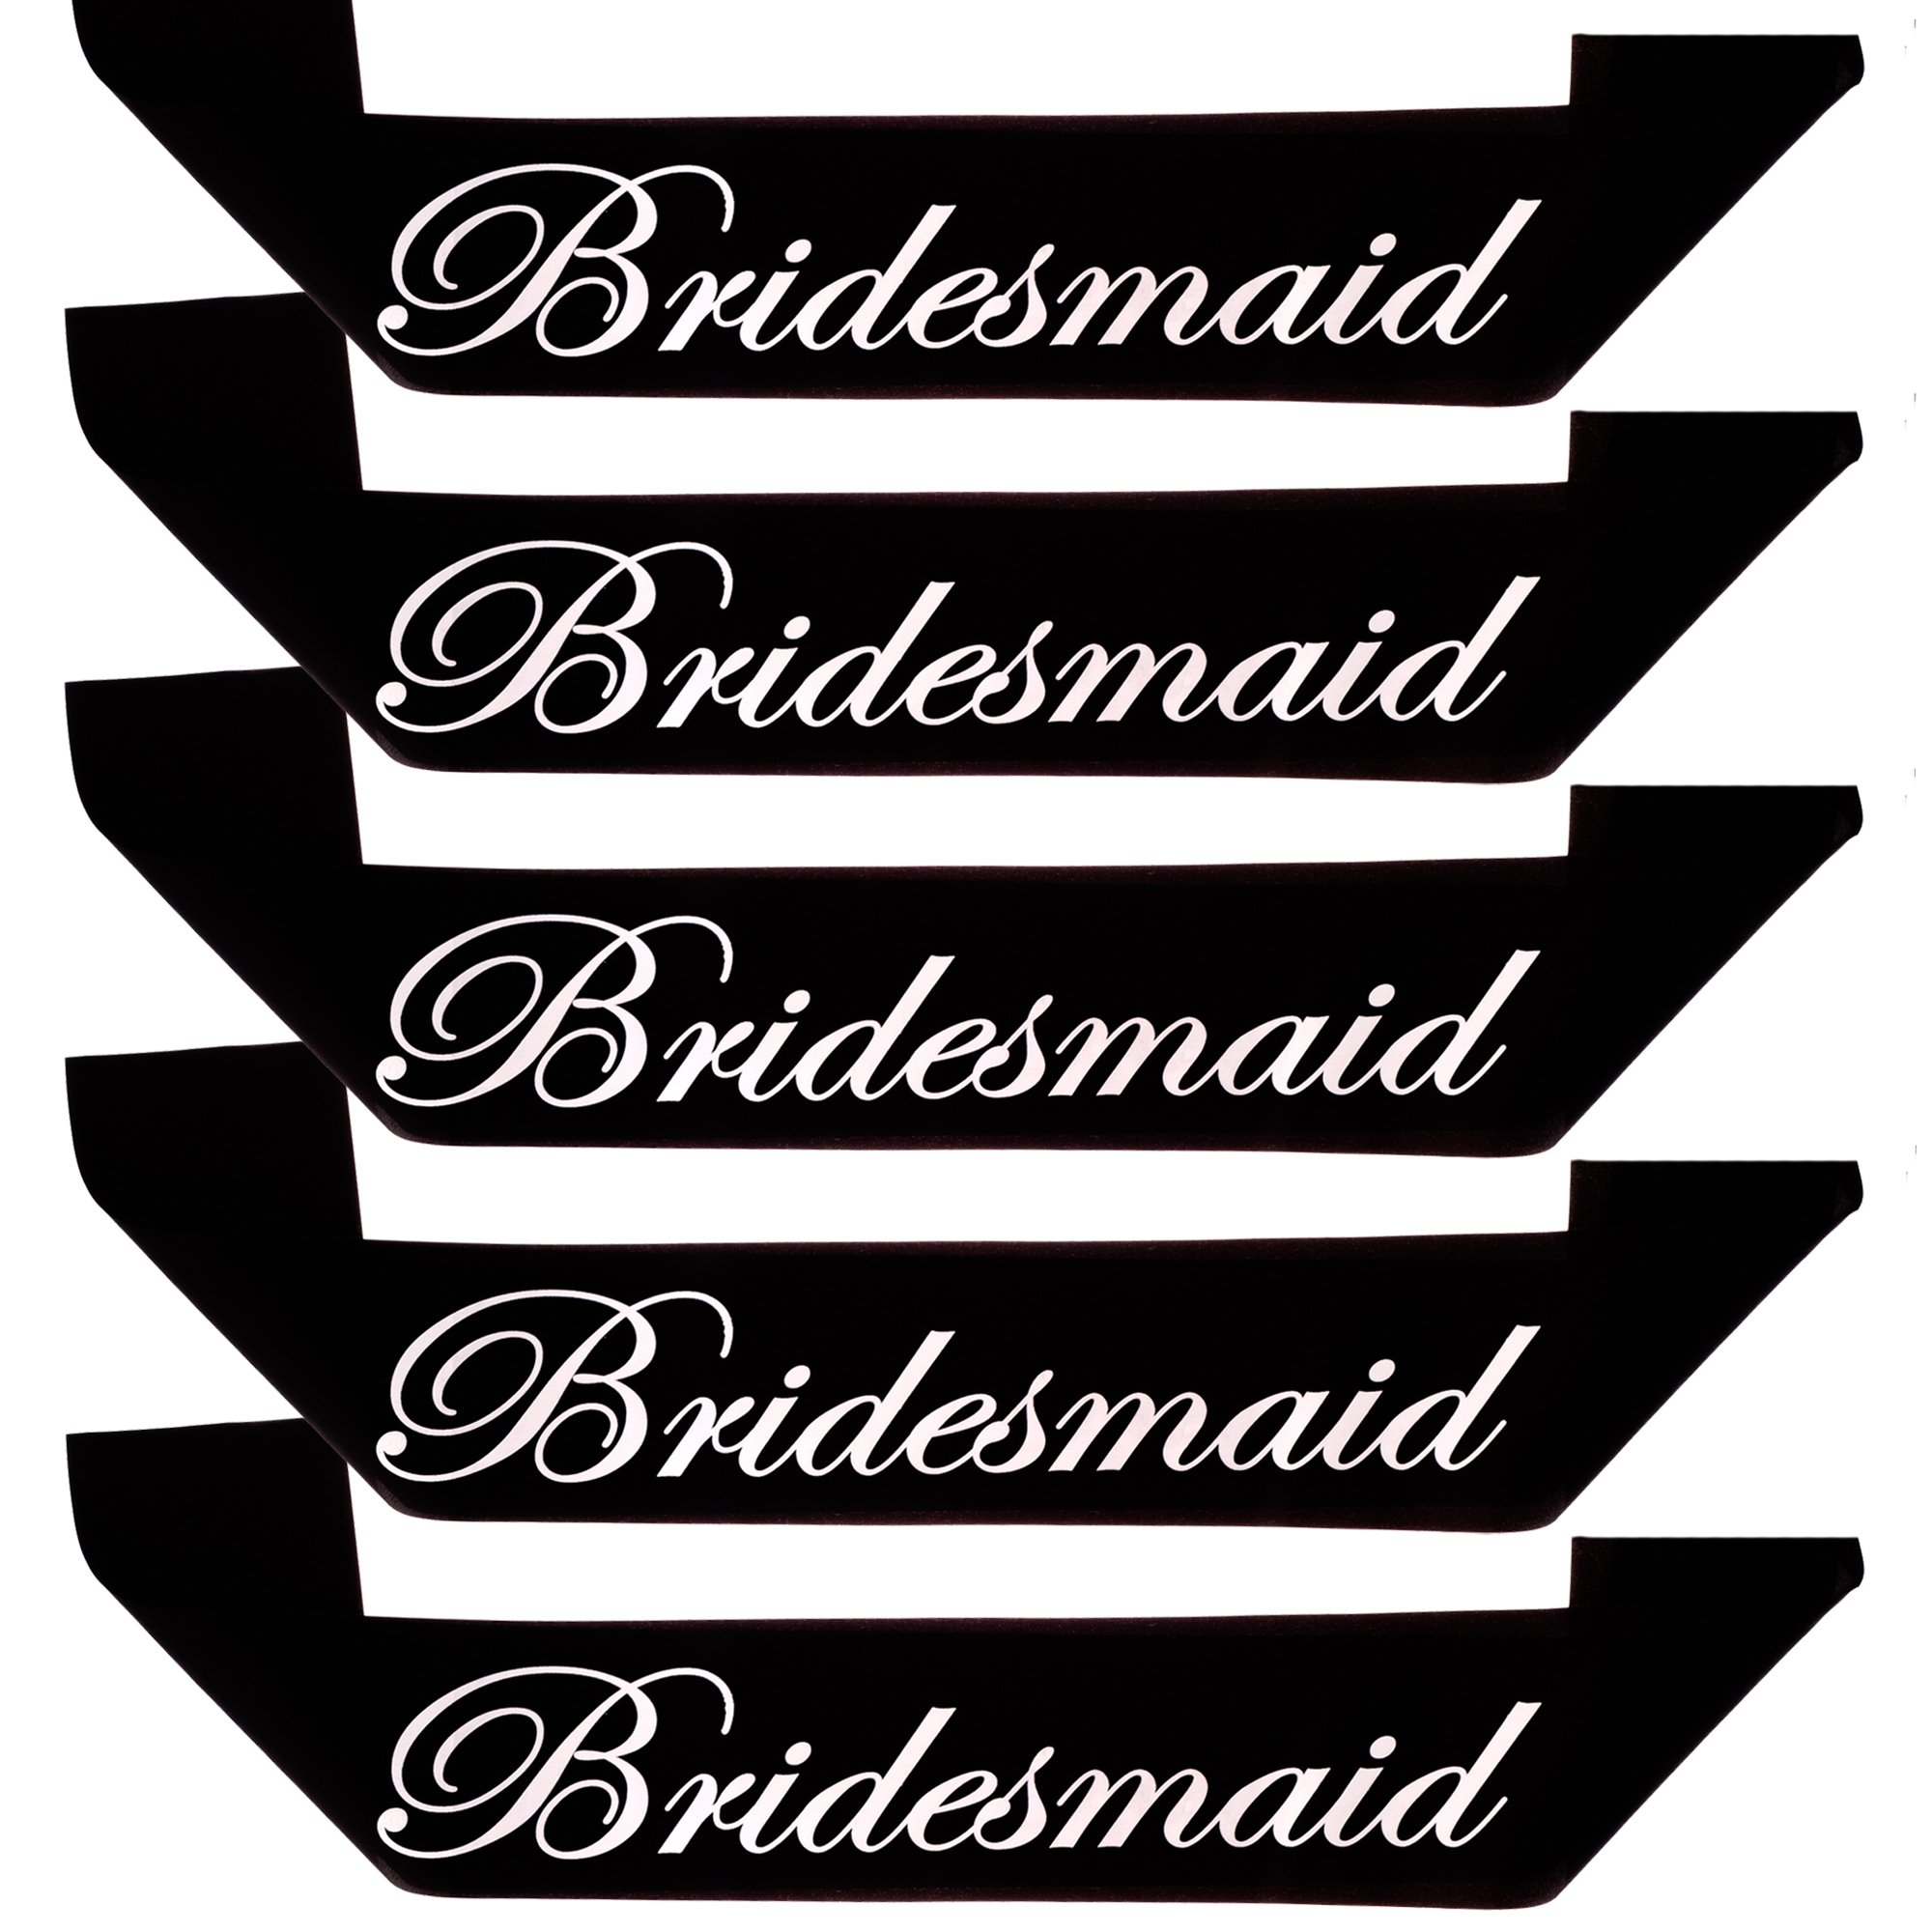 Ella Celebration Bridesmaid Sash, Bridal Party for Bachelorette and Bride to Be Sashes, Accessories Set (Bridesmaid, Set of 5)